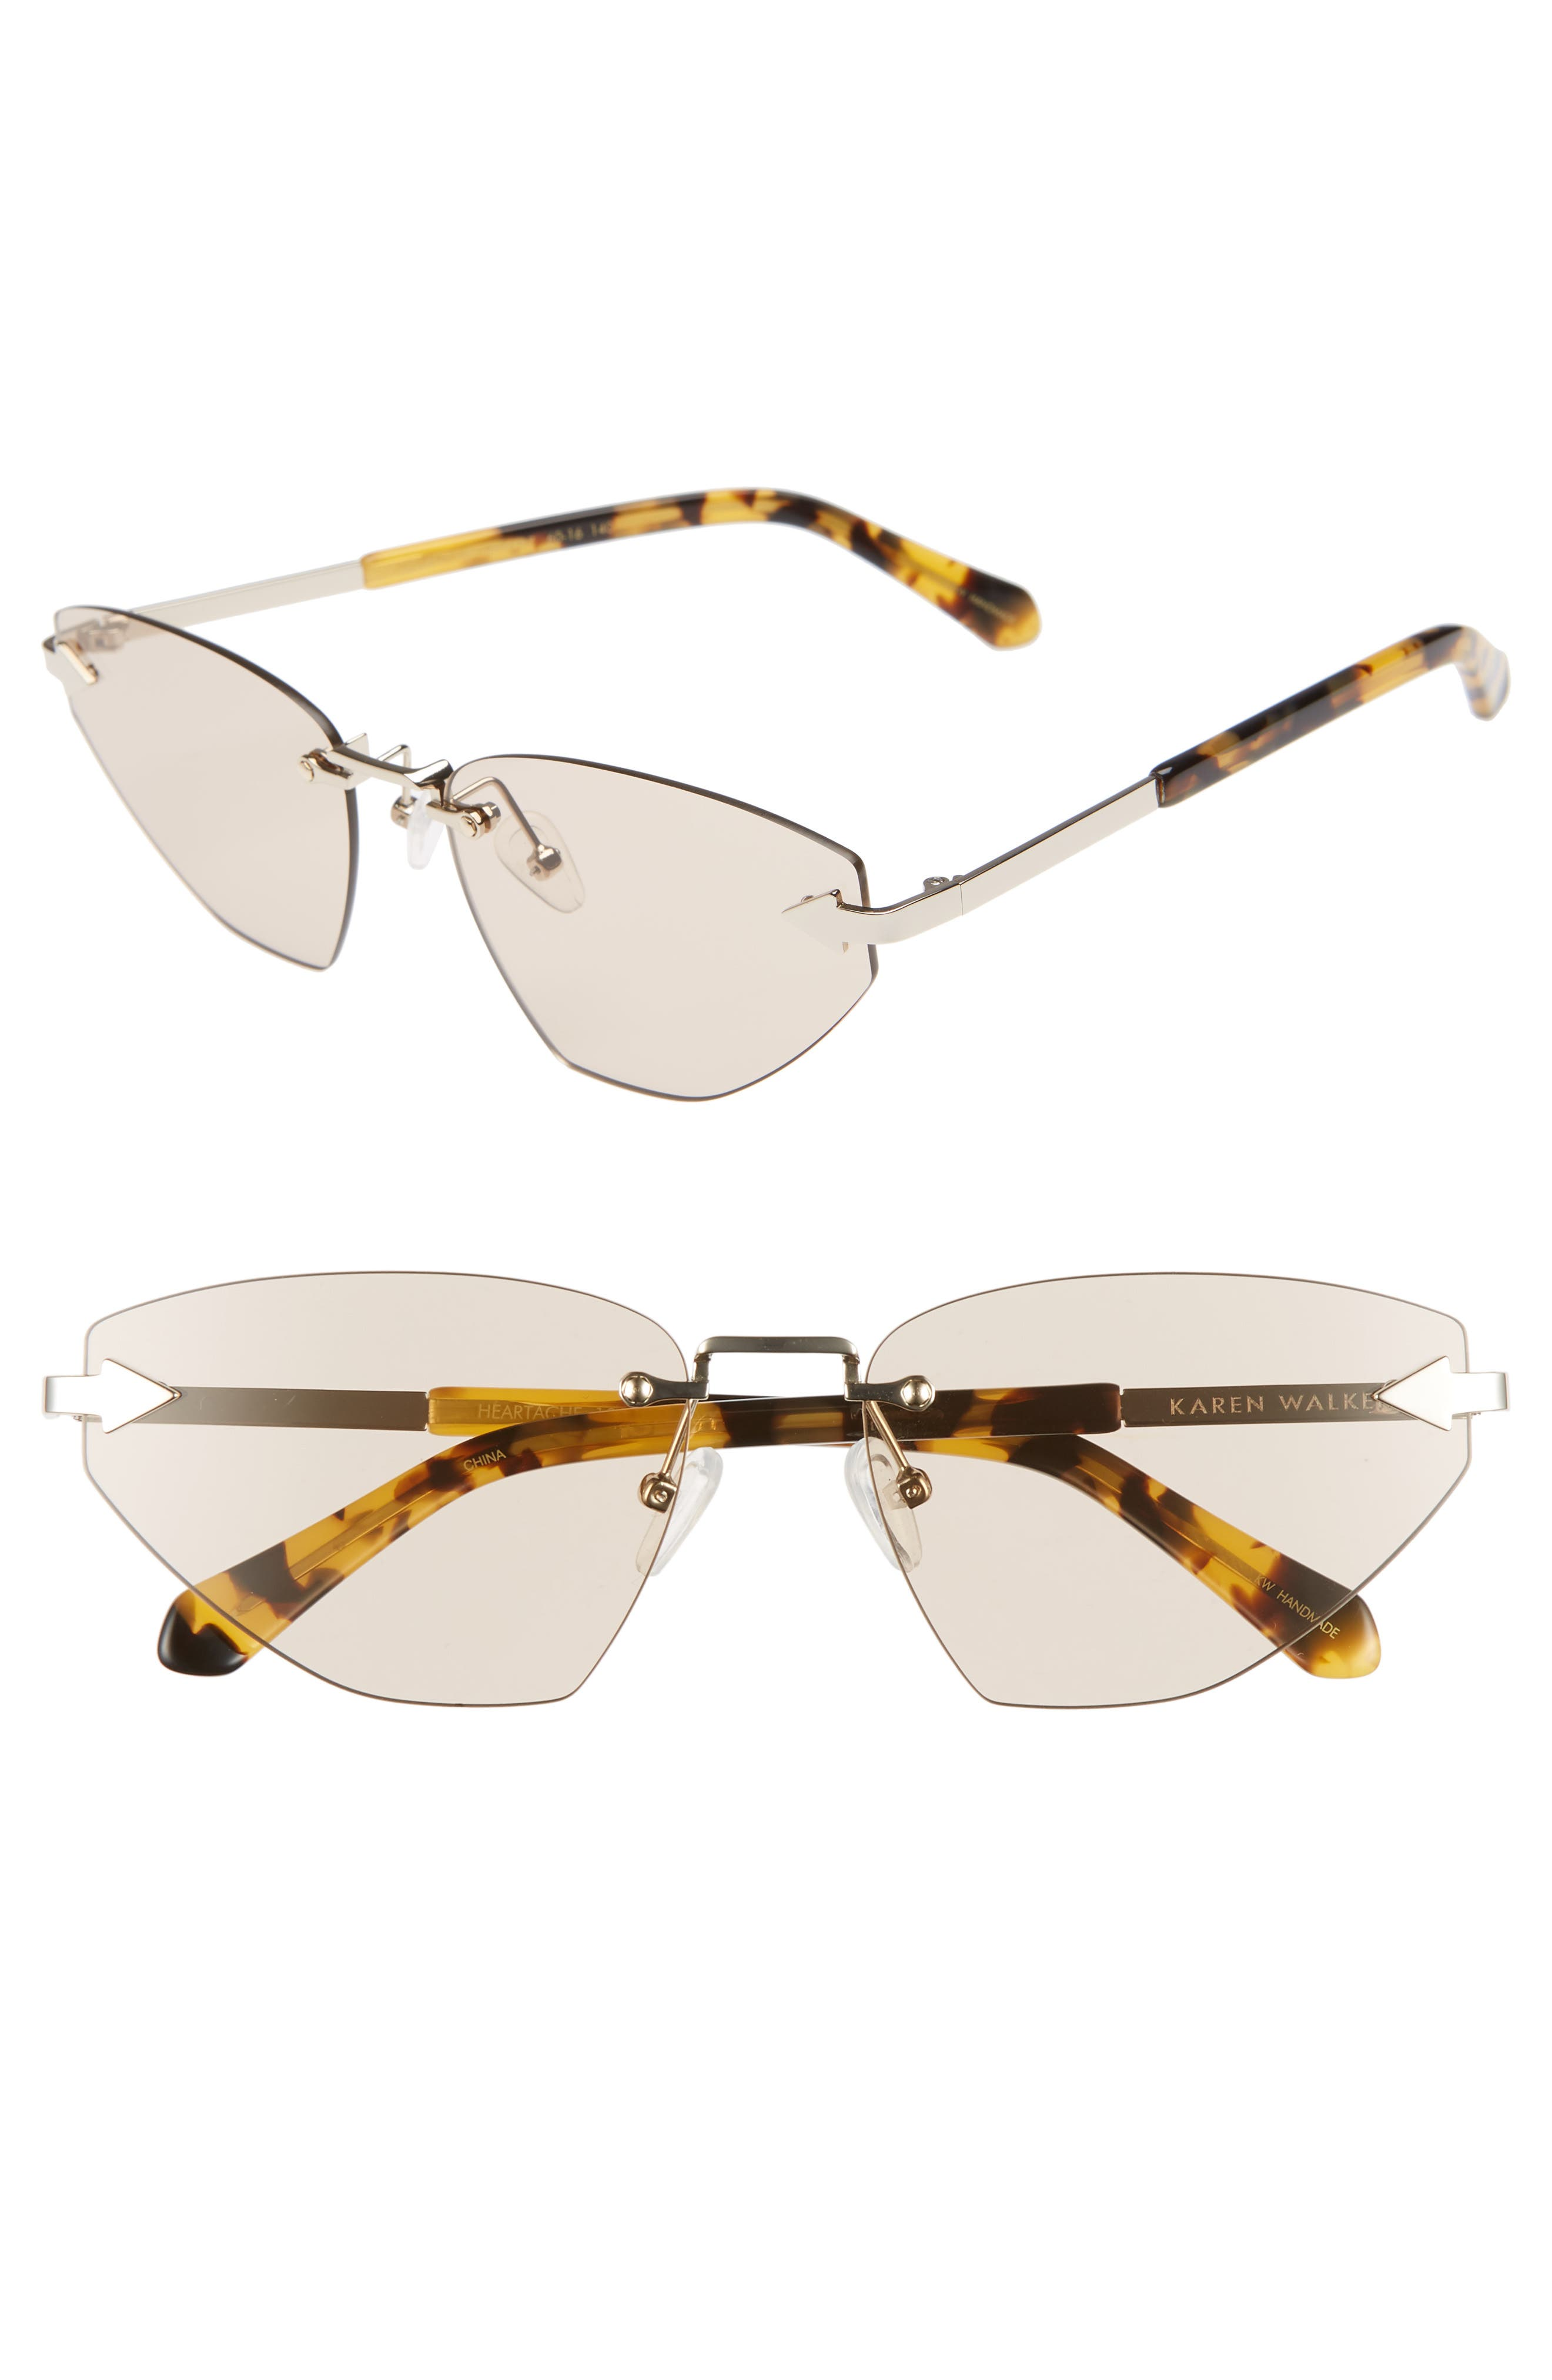 Heartache 60mm Cat Eye Sunglasses,                             Main thumbnail 1, color,                             GOLD/ TORTOISE